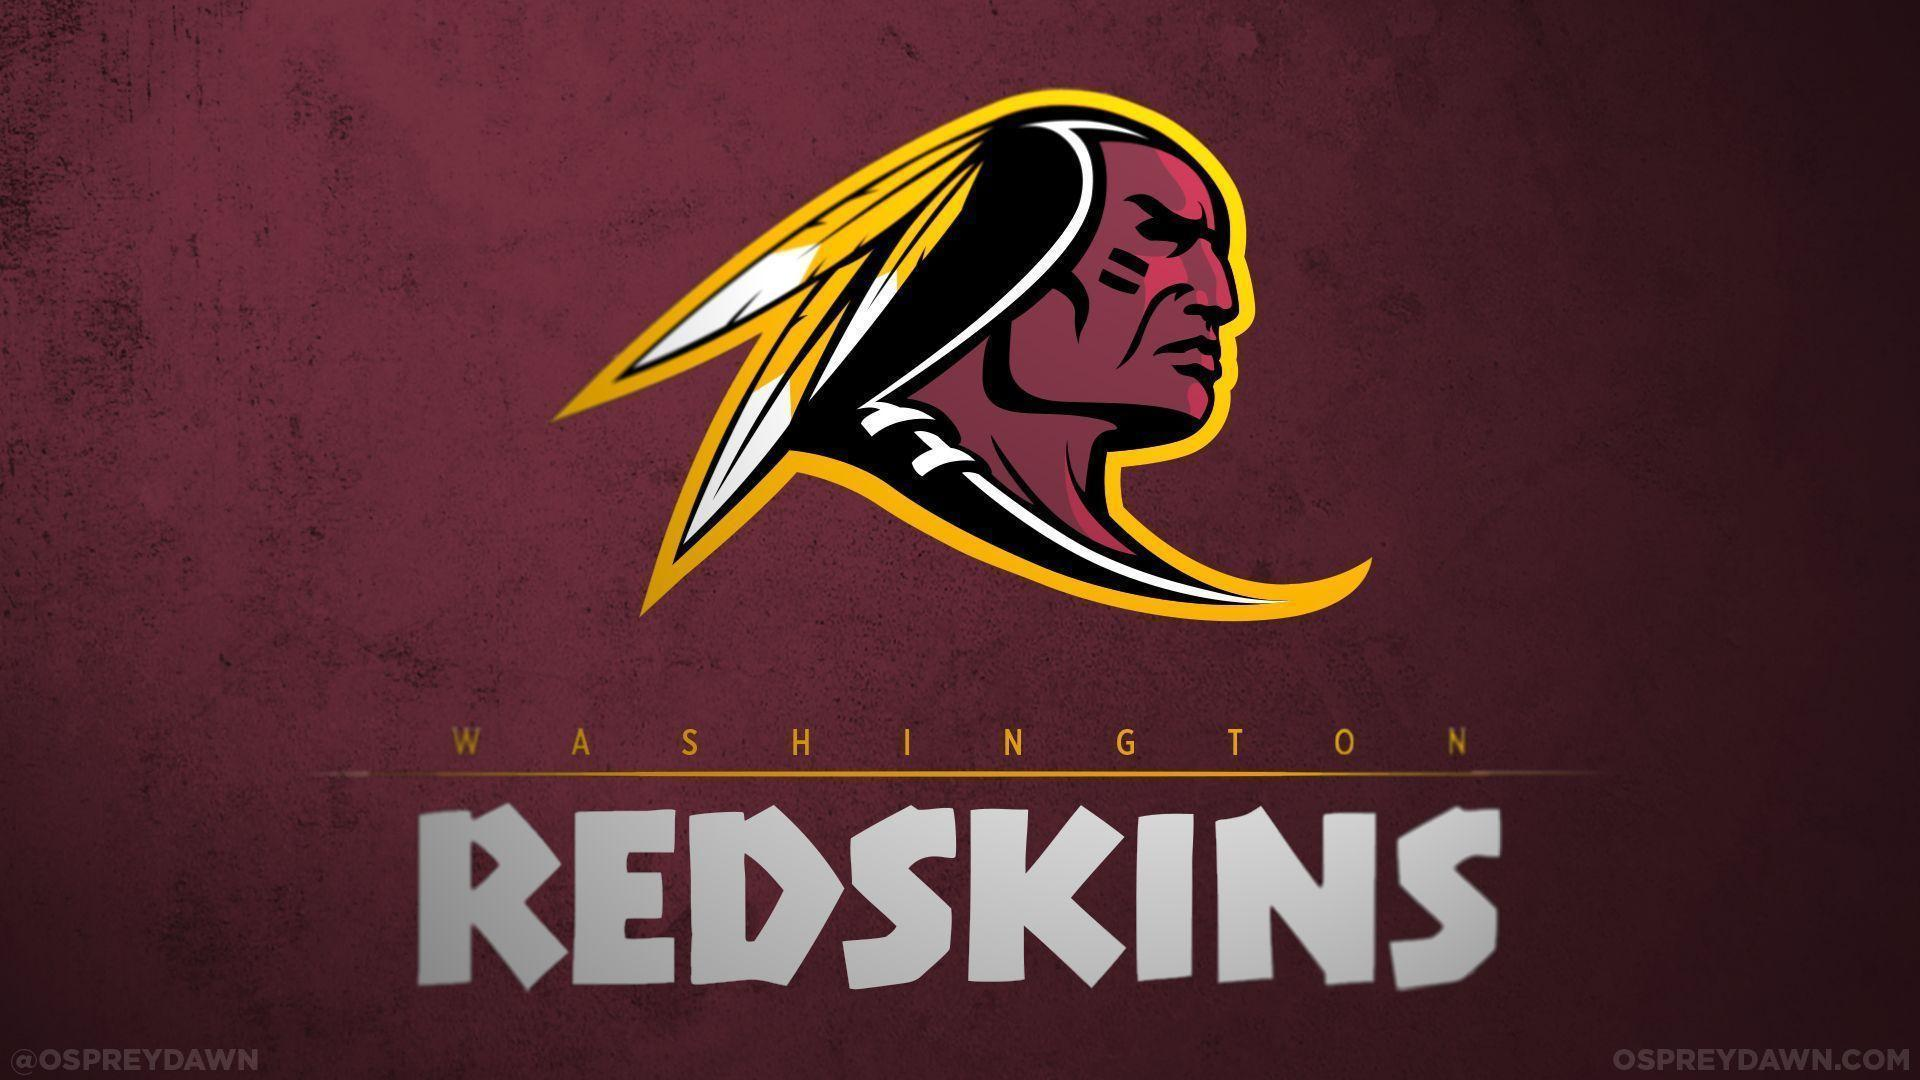 Washington Redskins Wallpapers 1920x1080